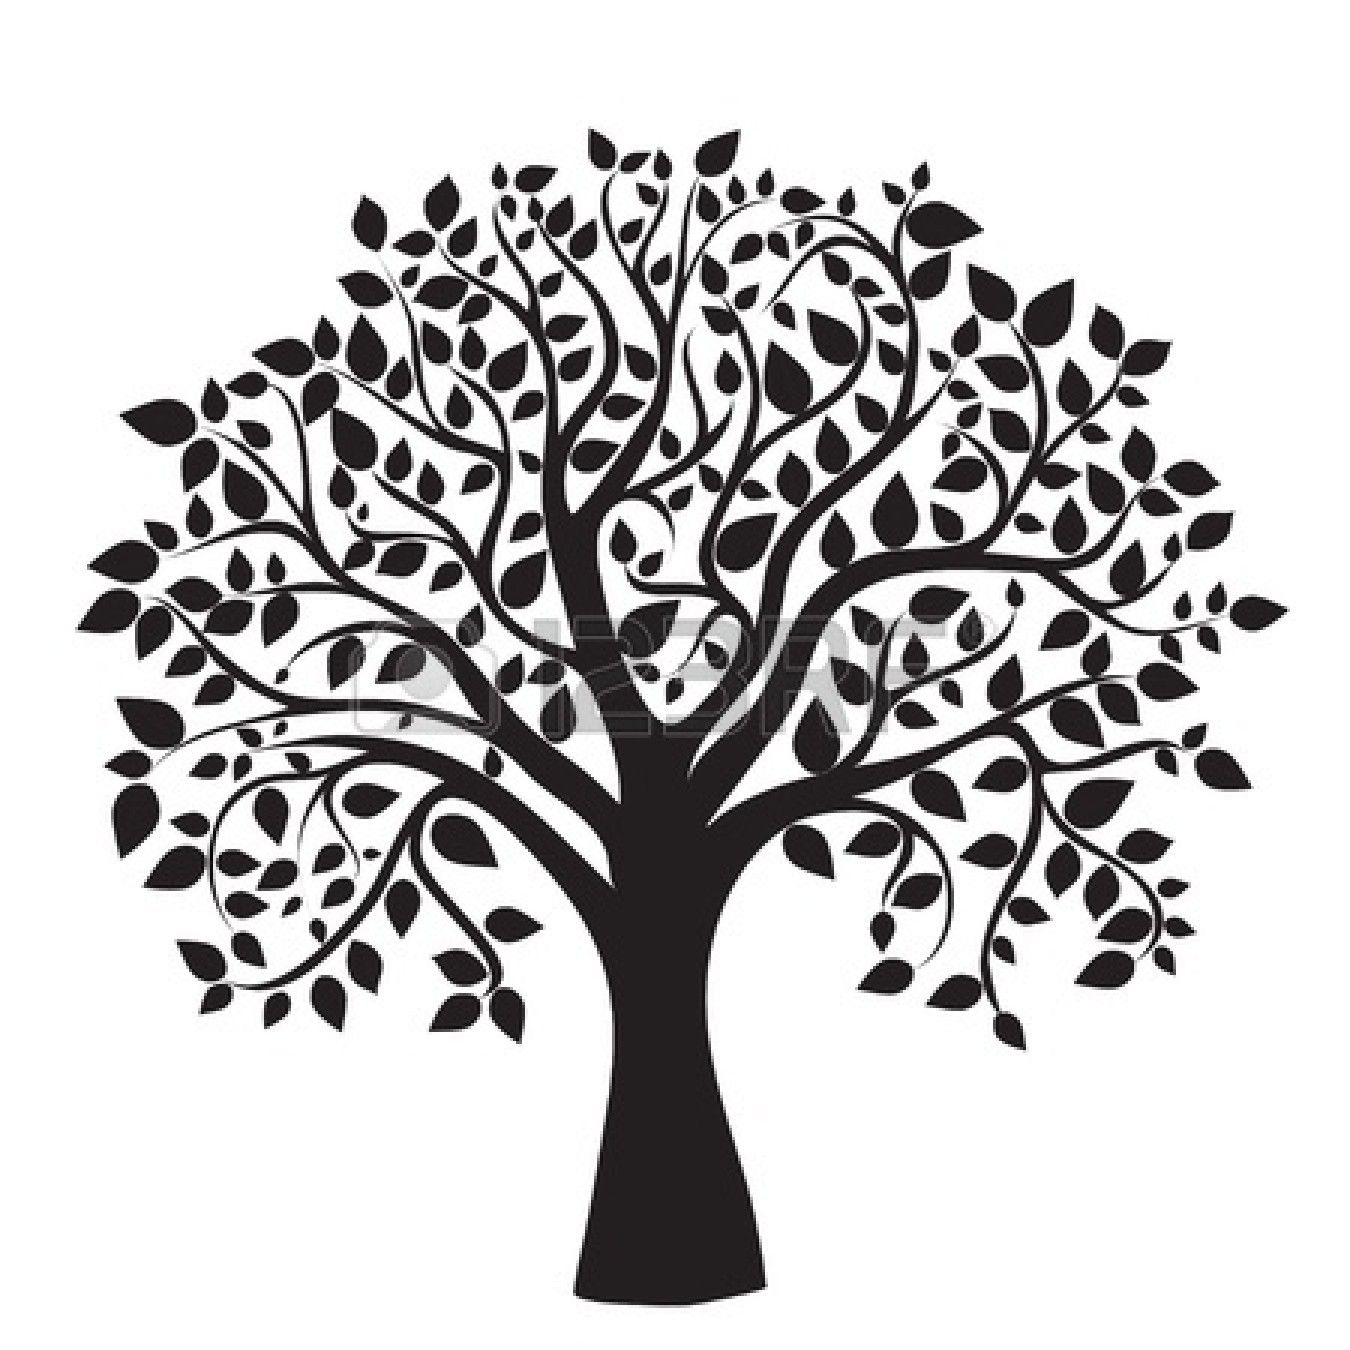 Free clipart images black and white tree jpg transparent Tree Of Life Images, Stock Pictures, Royalty Free Tree Of Life ... jpg transparent